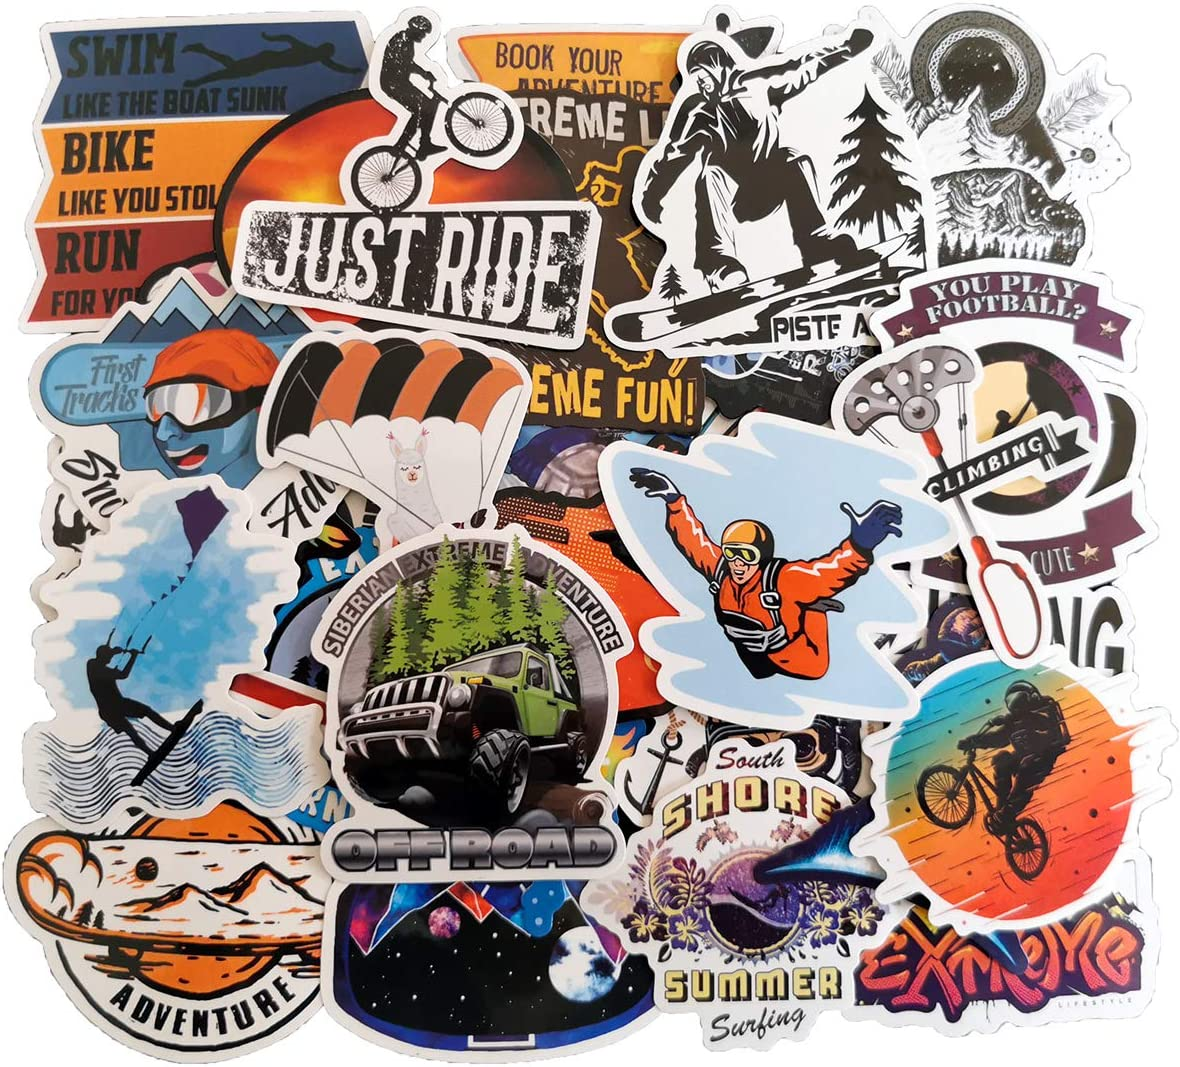 Outdoor Sport Adventure Tourism Stickers Pack(50-pcs), No Repeat Stickers for Skateboards Snowboard Bike Moto Laptop Water Bottle Luggage ATV SUV with Waterproof PVC.